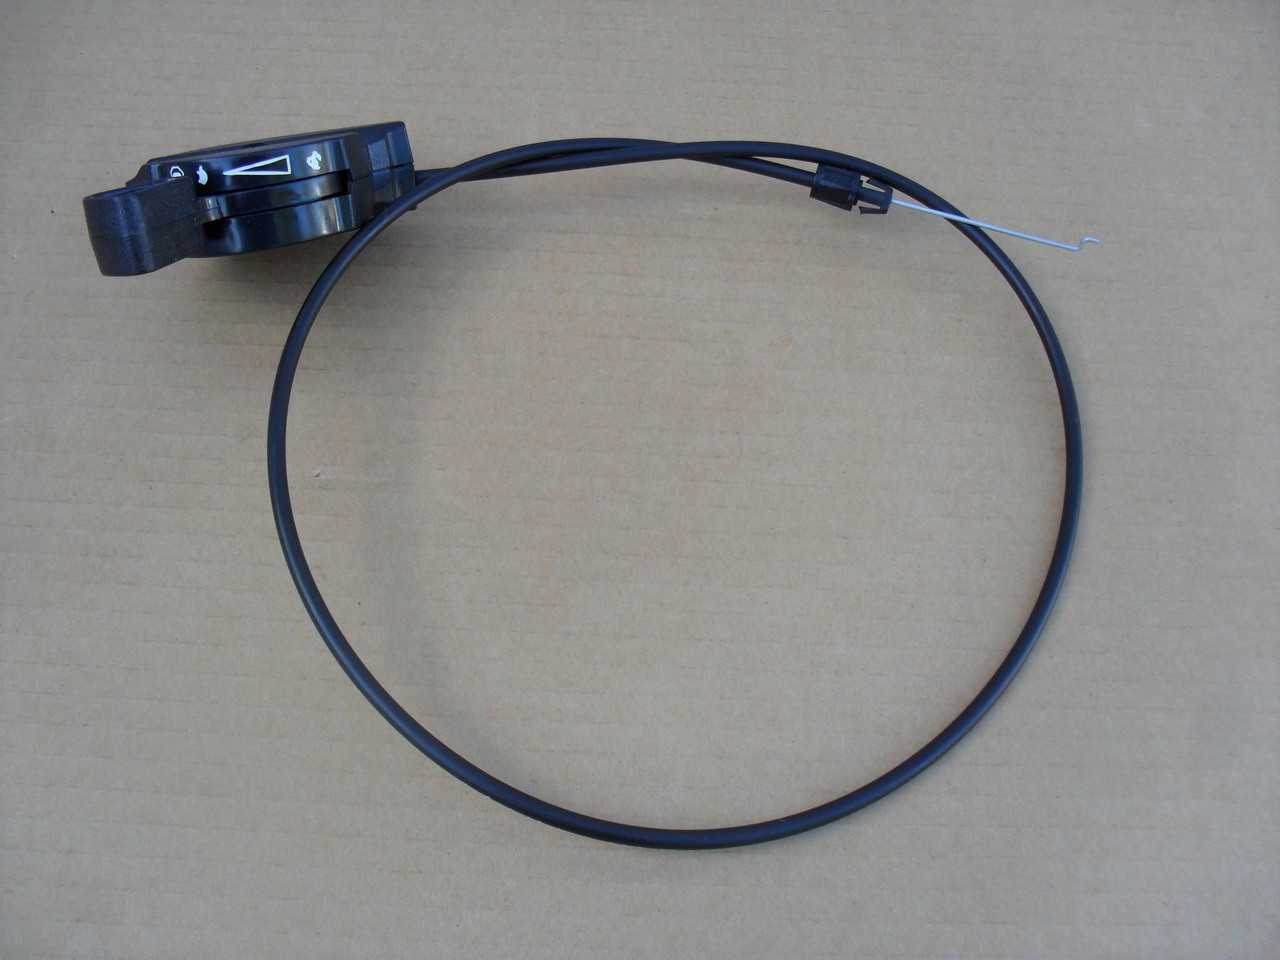 Throttle Control Cable for AYP, Craftsman Line Trimmer Mower 417238, 586861201, PPWT60022, PPWT60022X, 917.773740